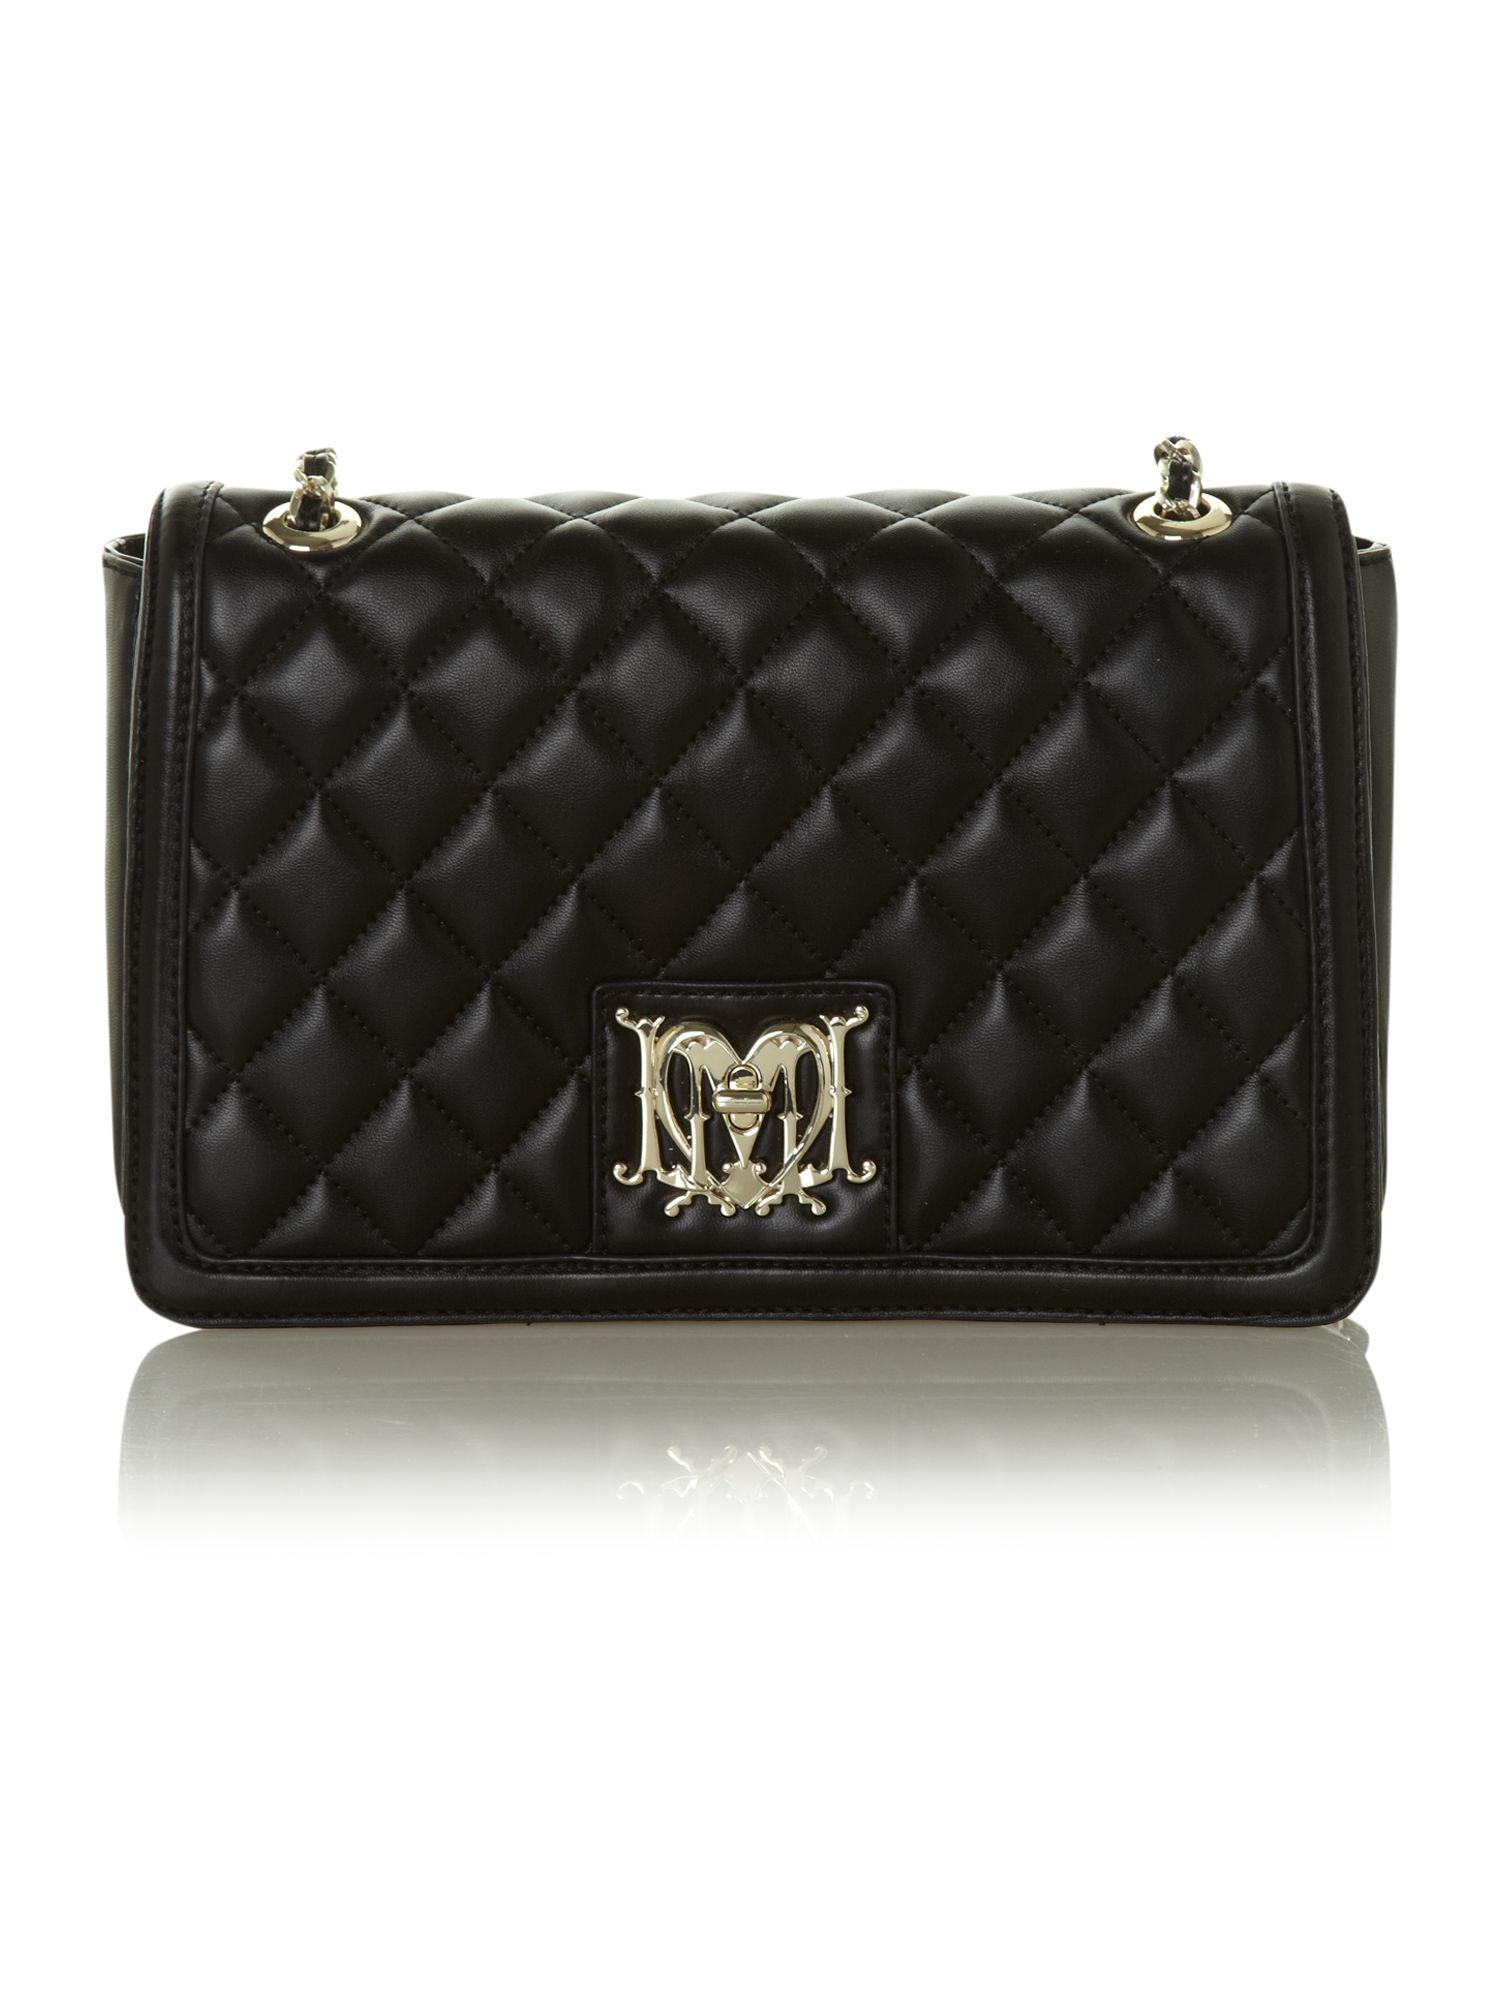 Love Moschino Black Medium Flapover Quilted Shoulder Bag 33